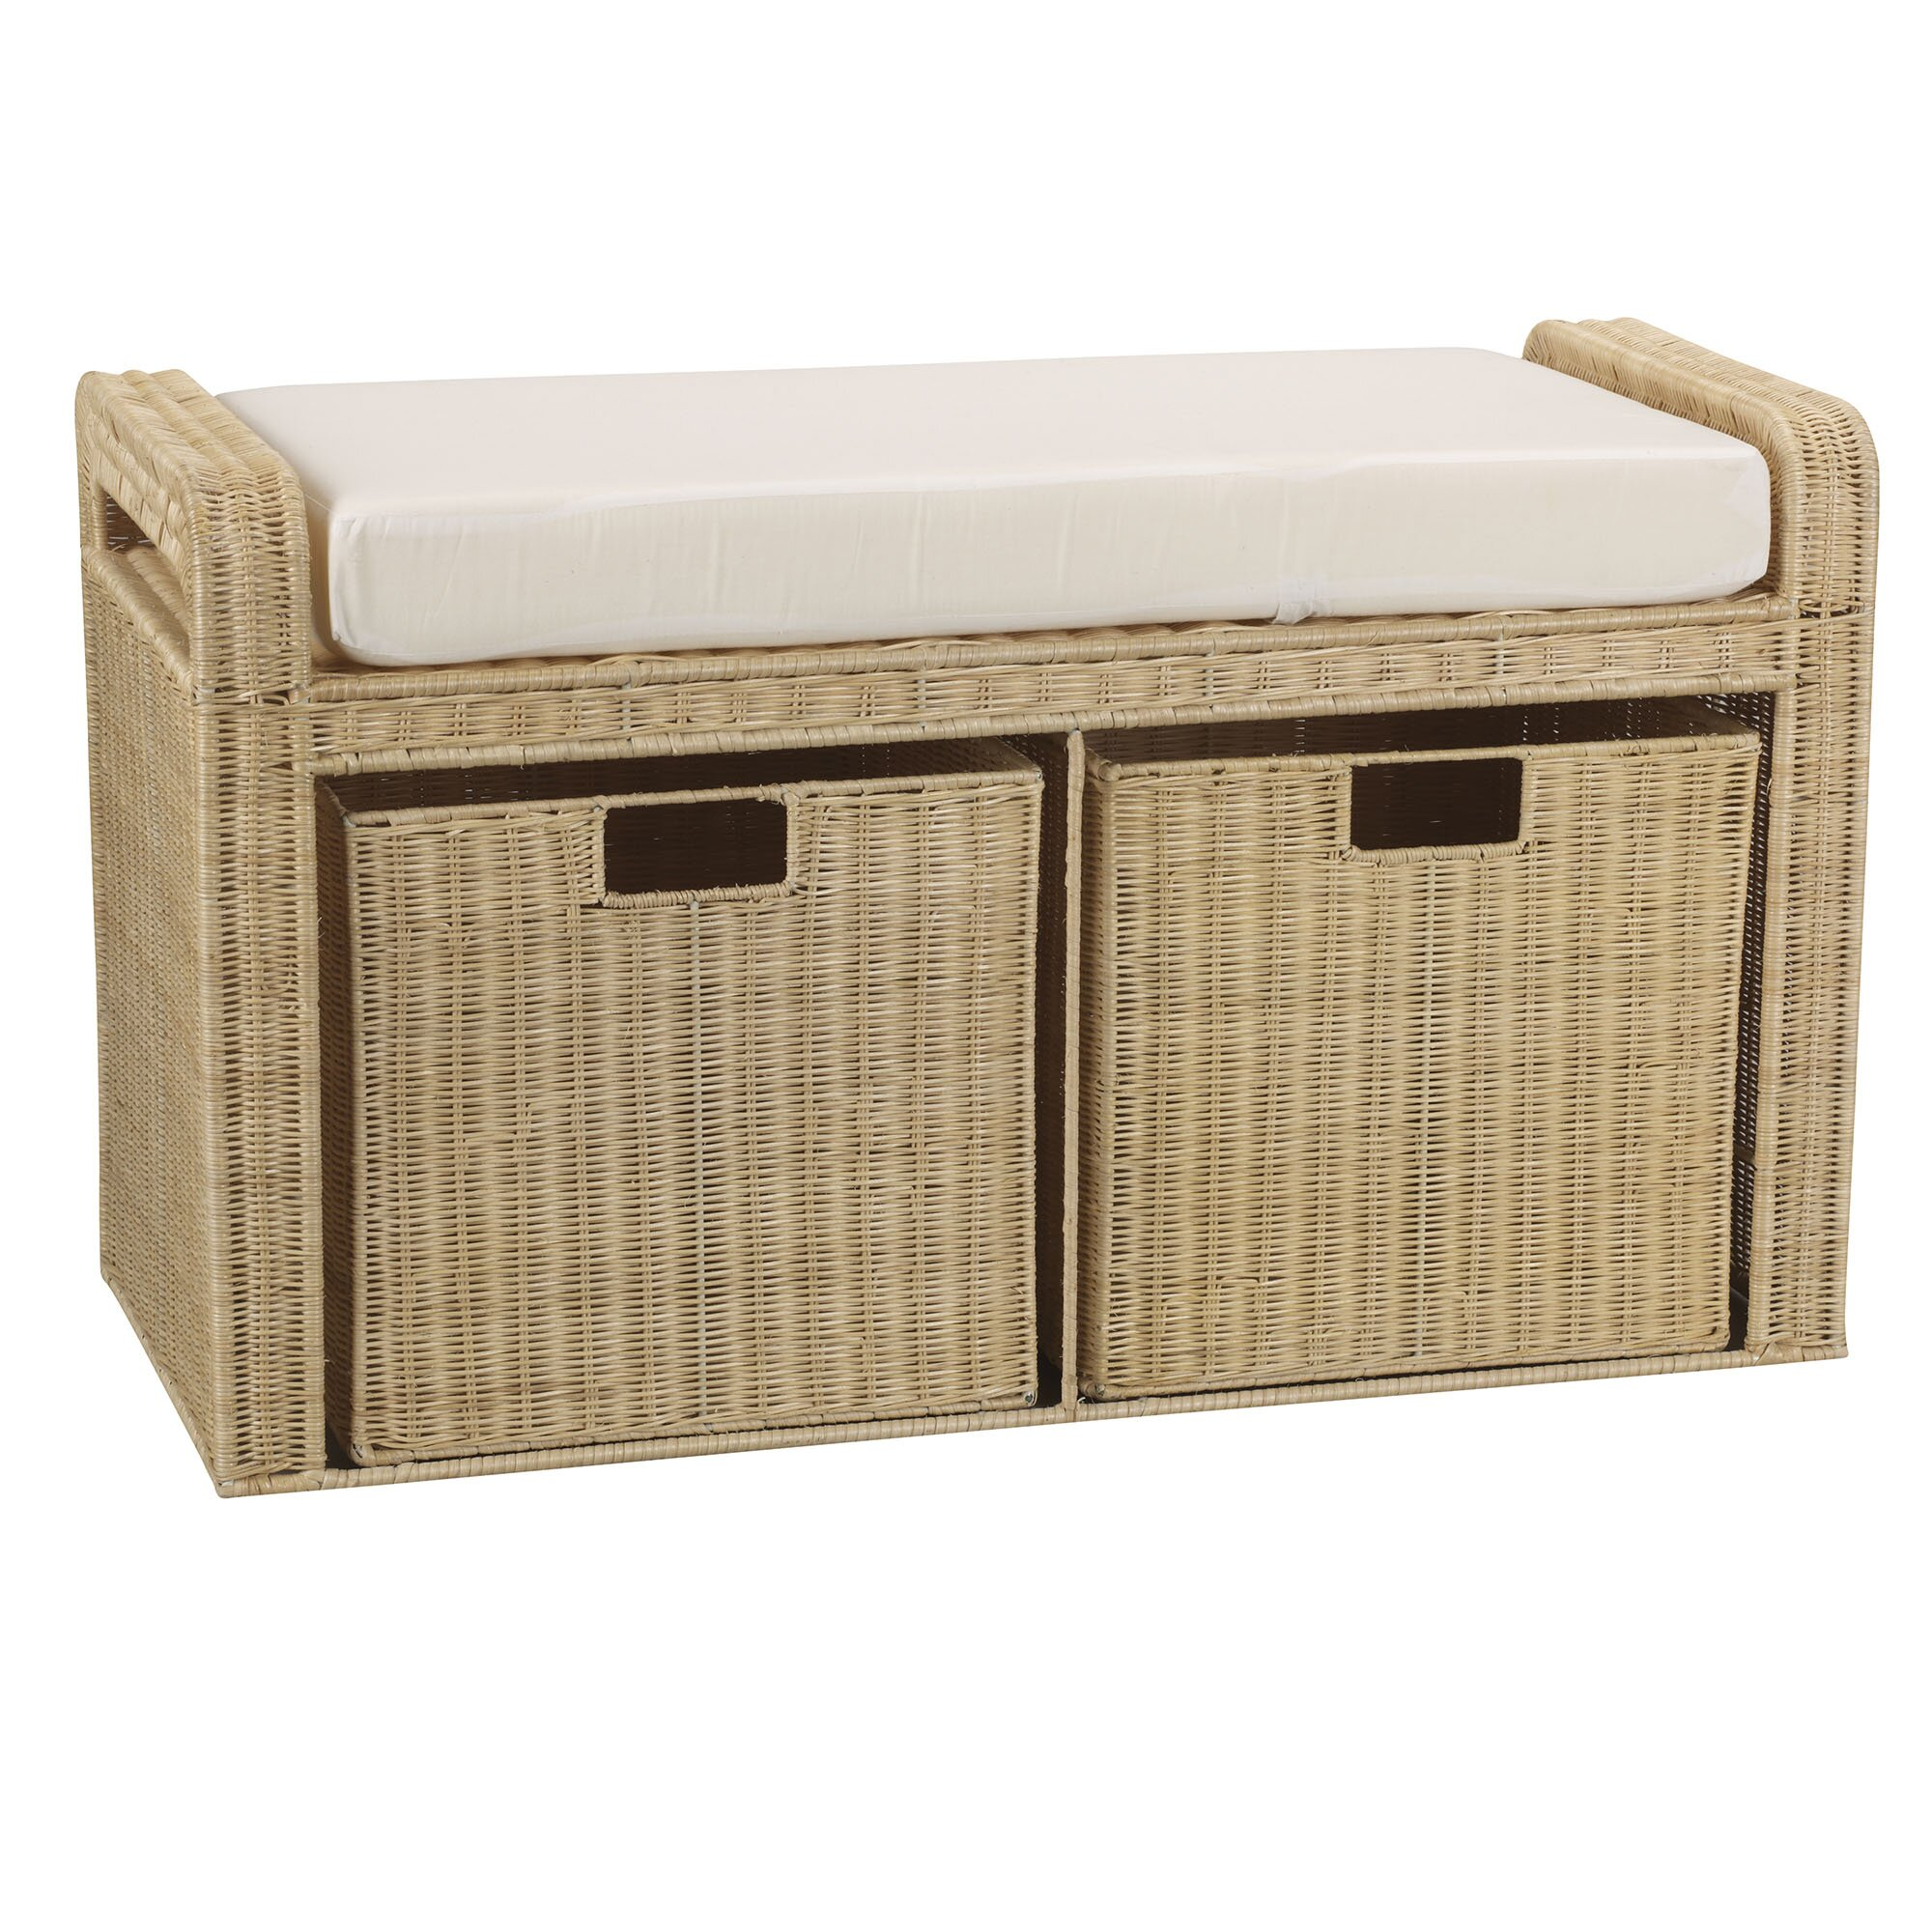 Household Essentials Rattan Natural Storage Bench Reviews Wayfair